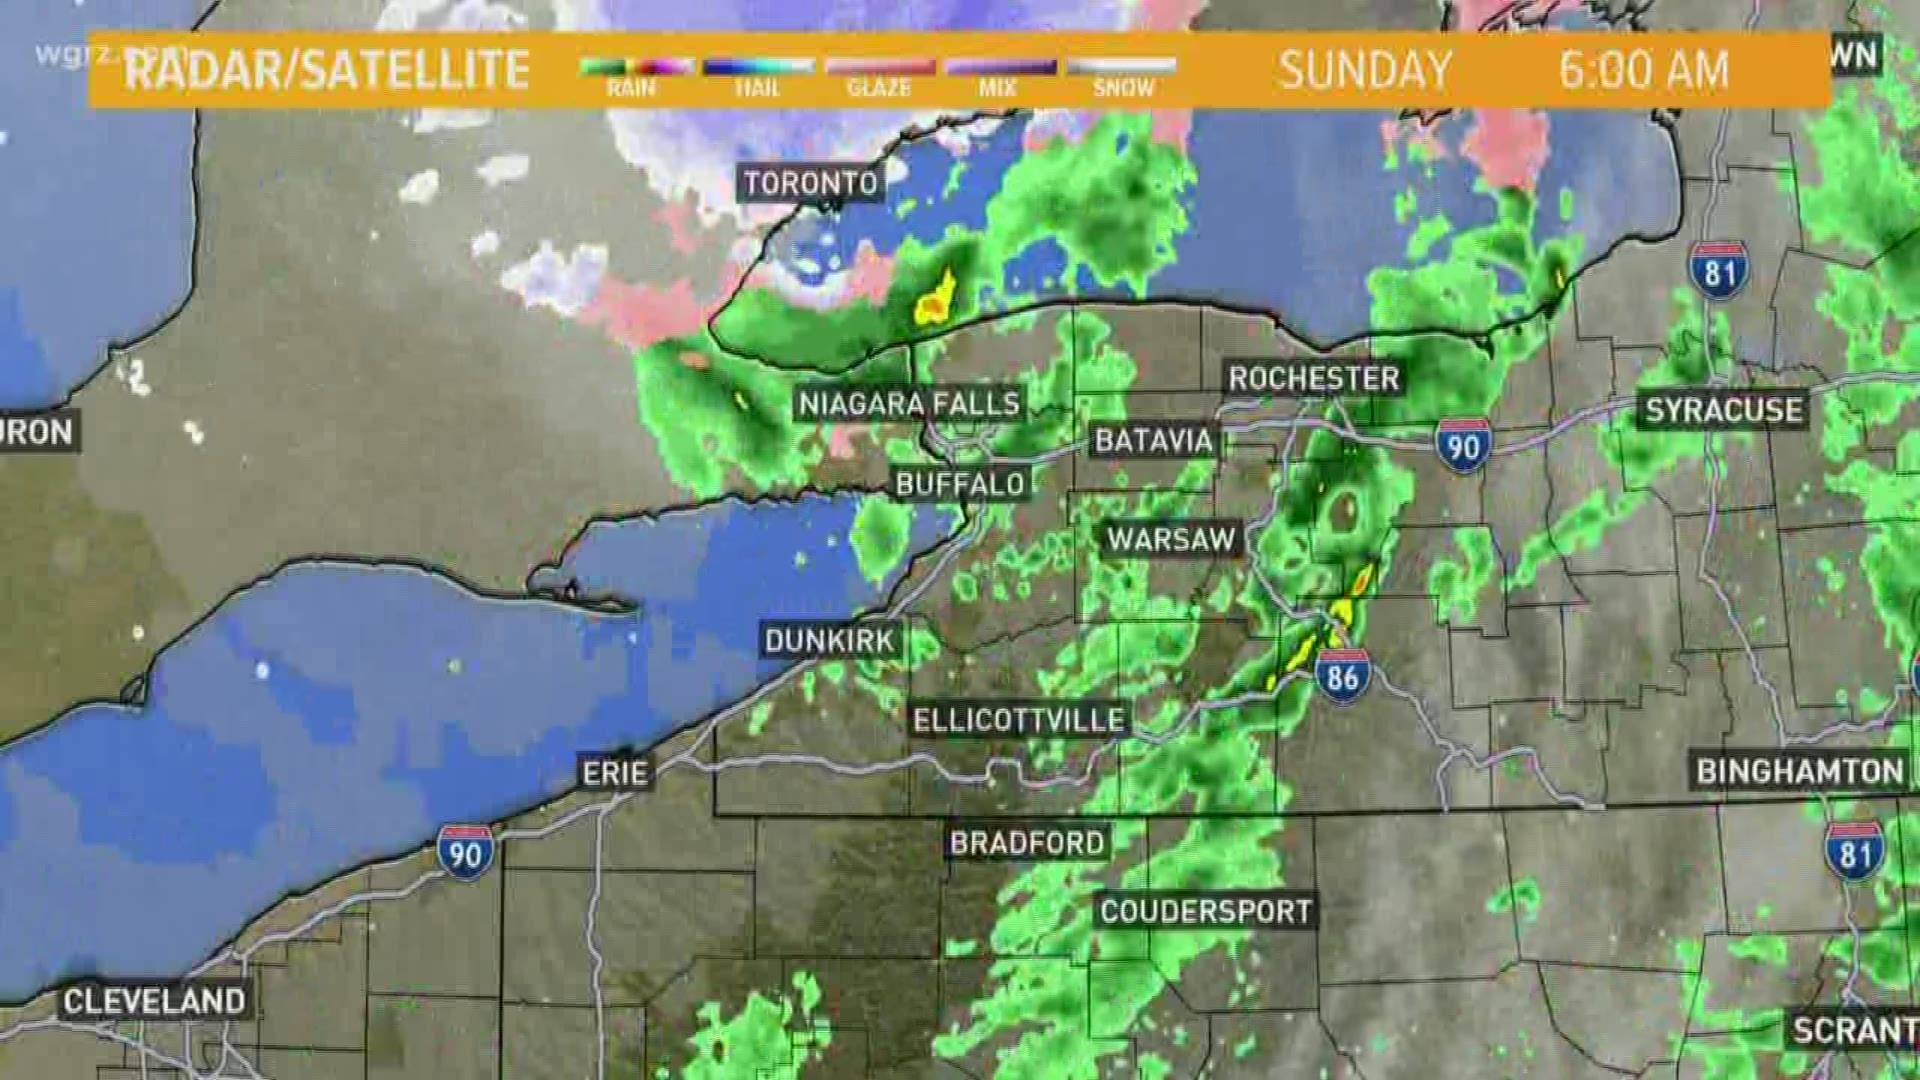 High Winds Roar Through Western New York Wgrz Com Zoom in to your street or out to your region and view past and futurecast radar. high winds affecting western new york